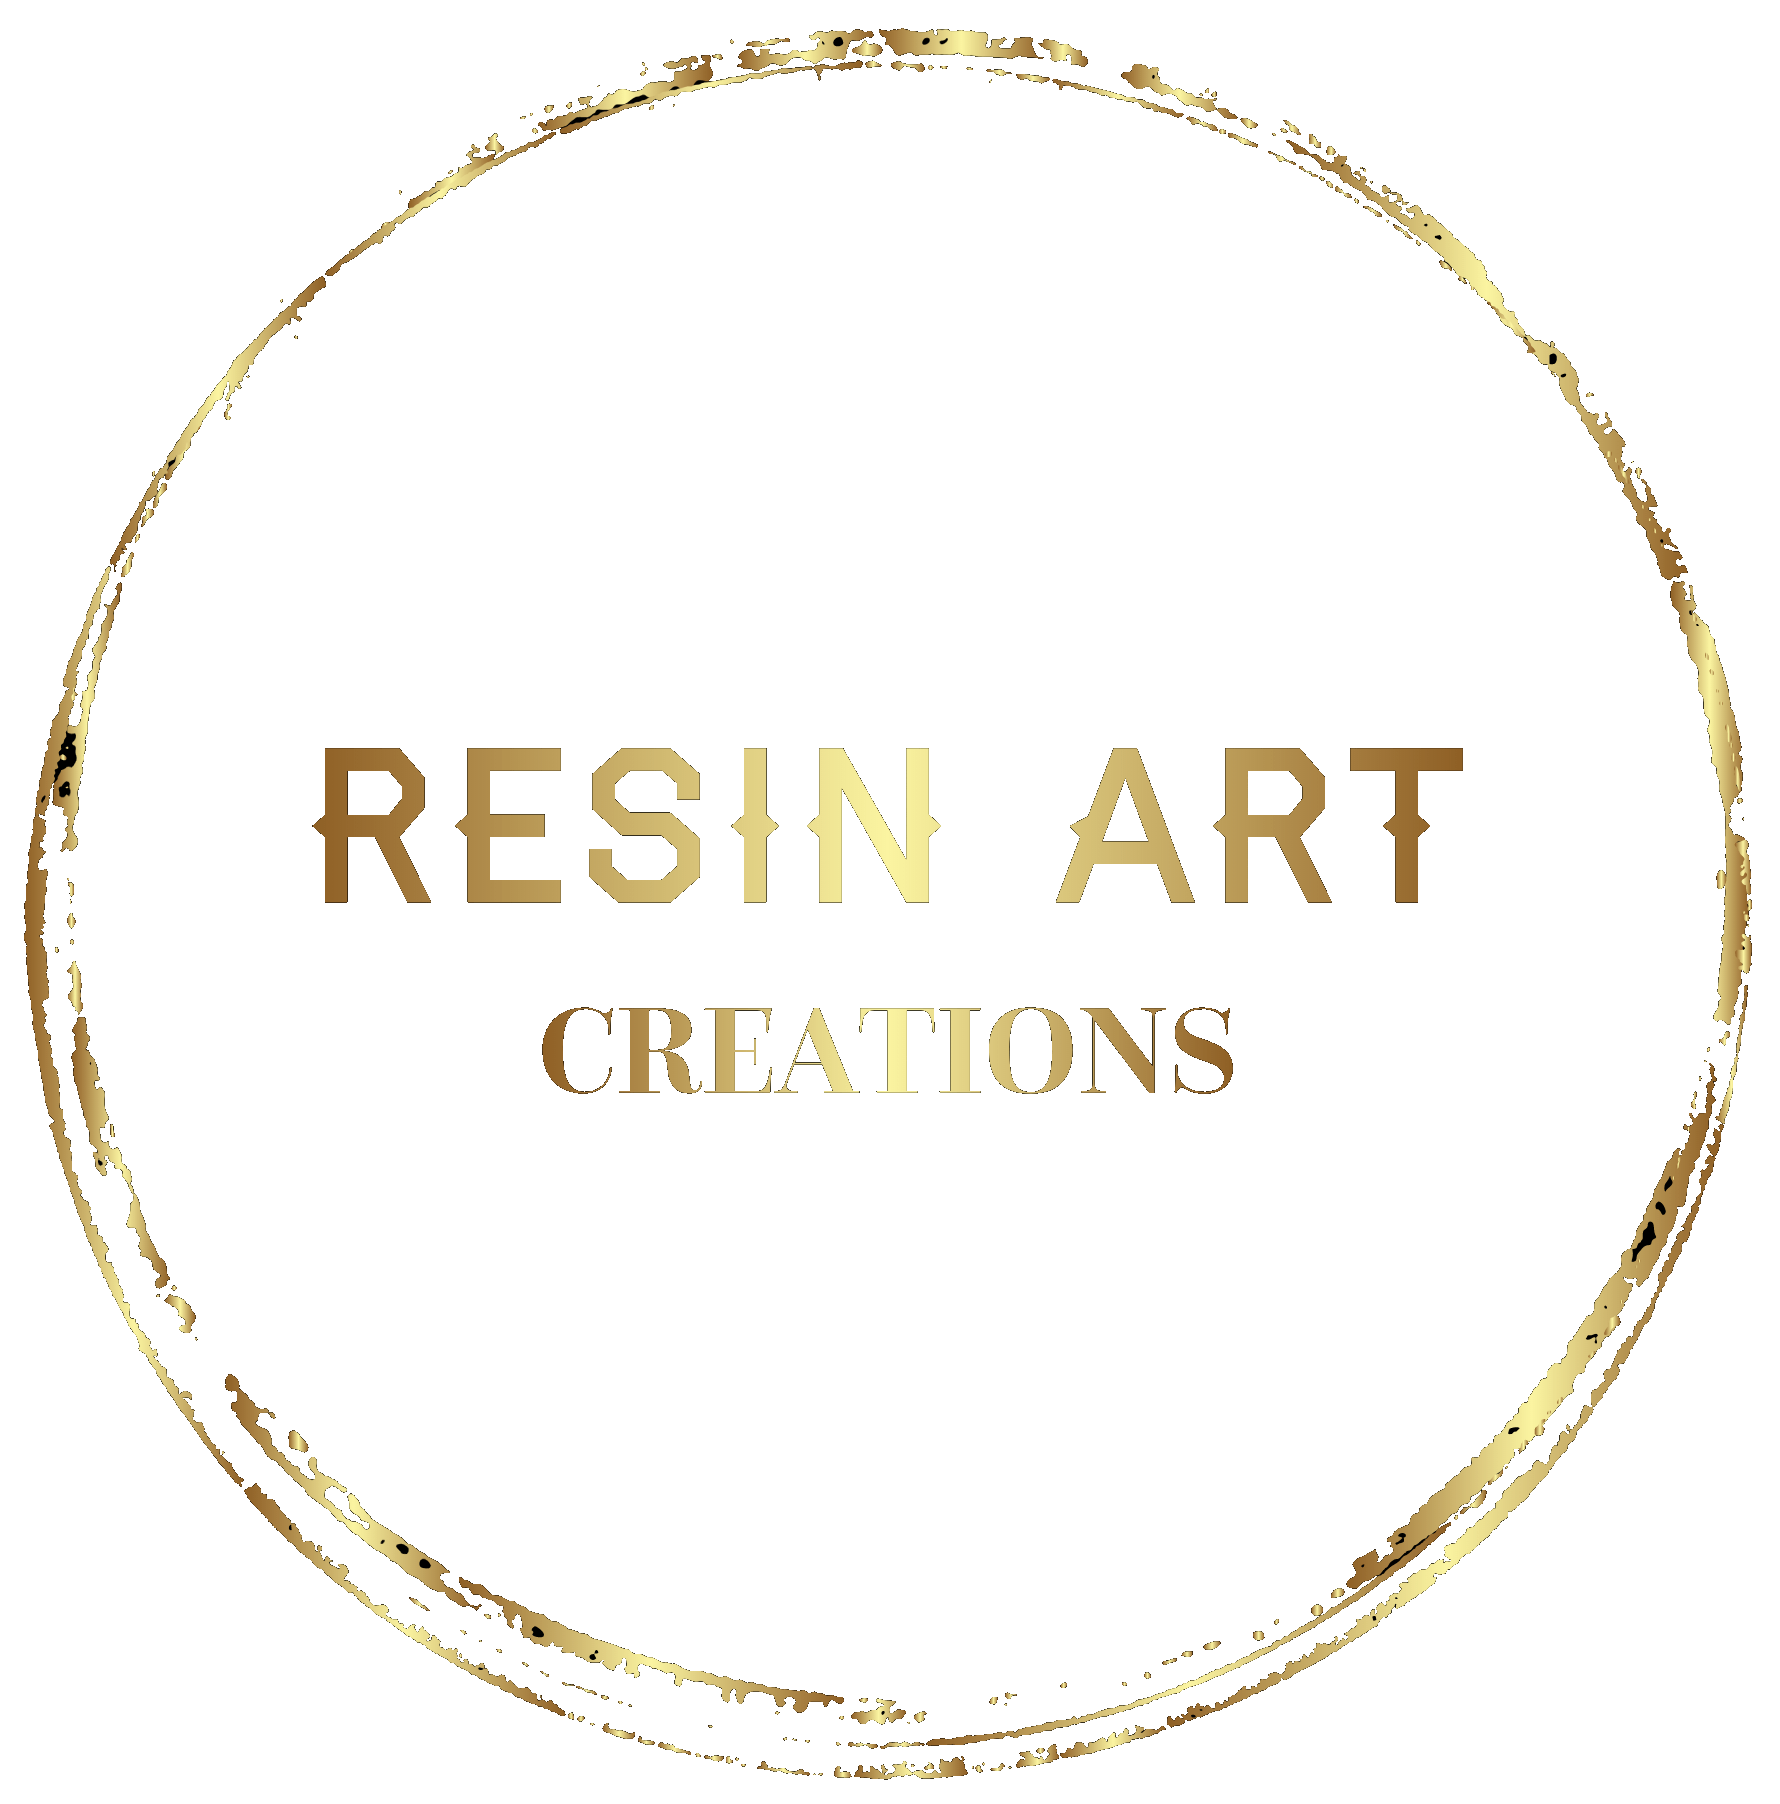 Resin Art Creations